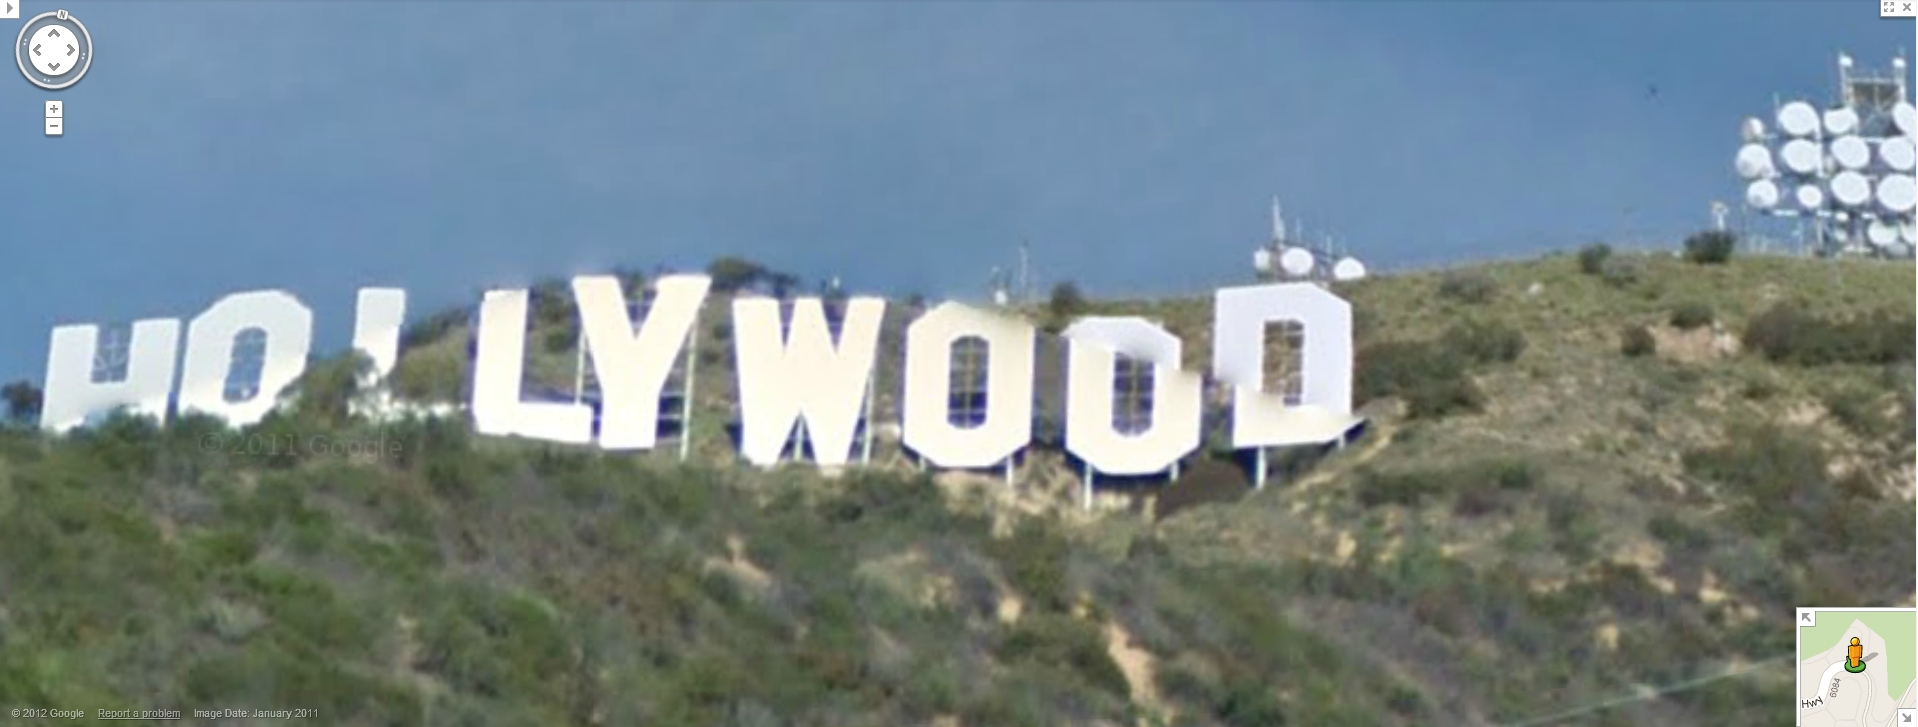 hollywood sign february 13 2012 from google maps street view